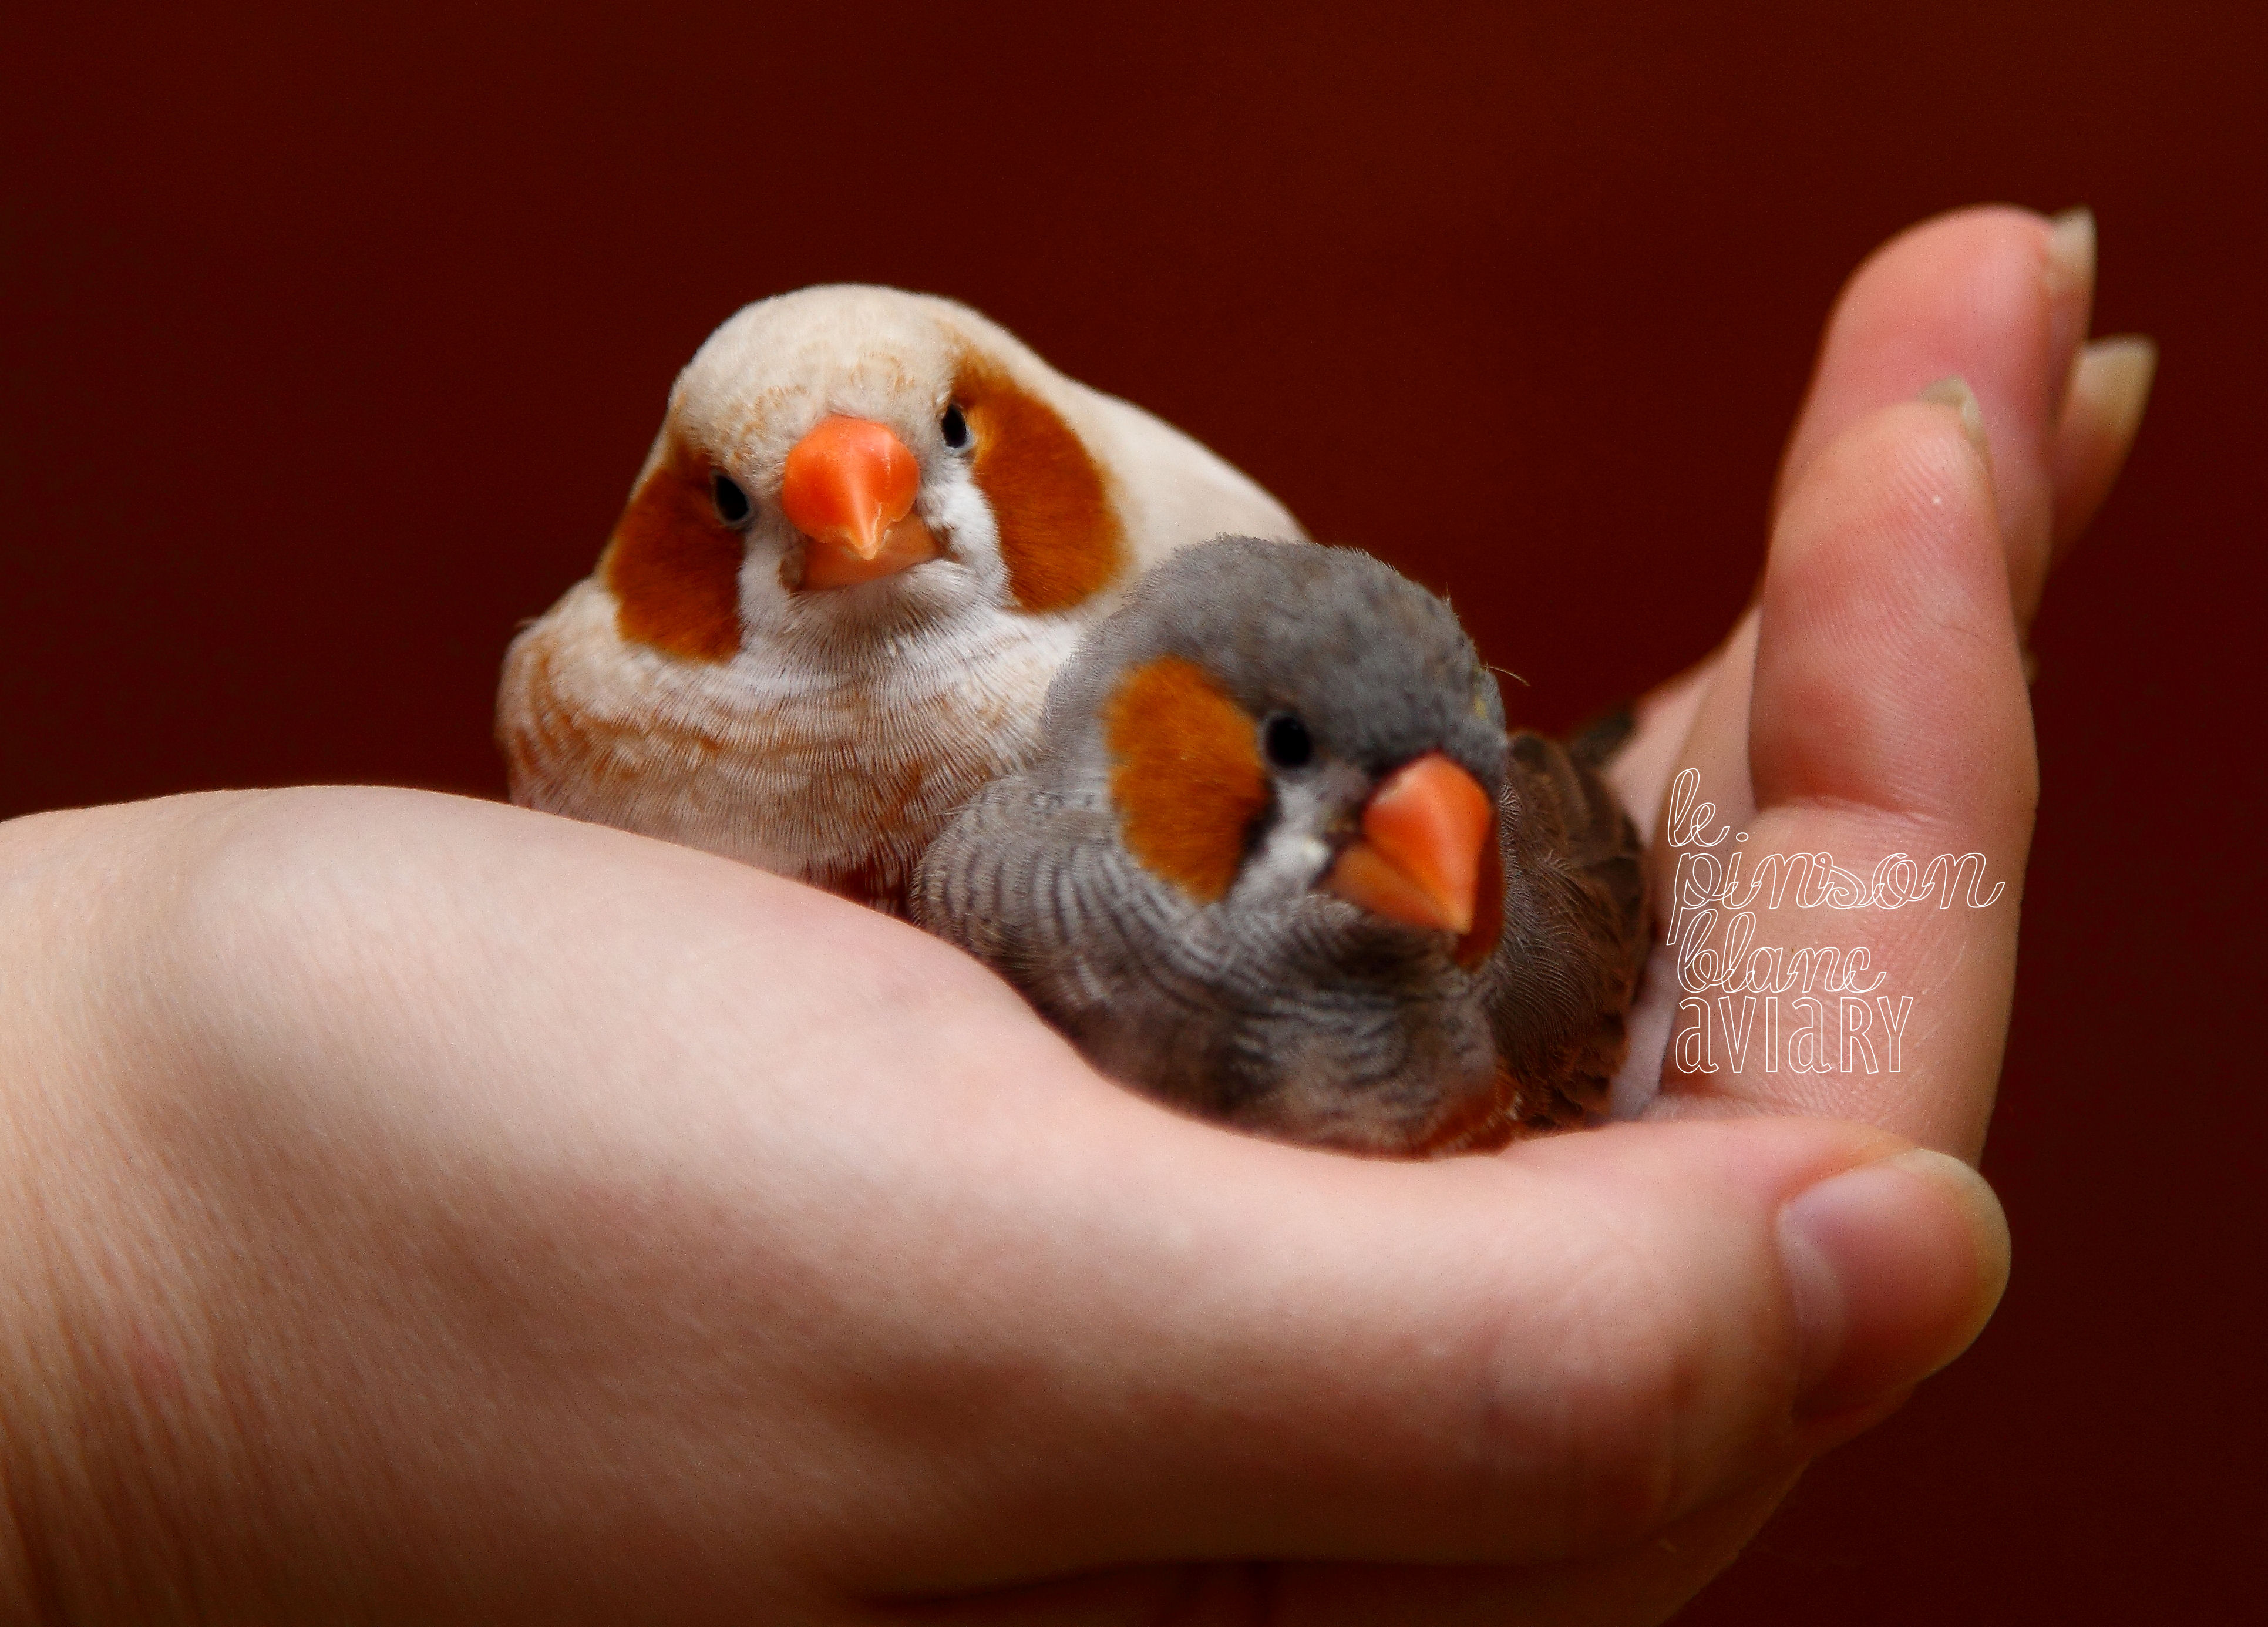 White zebra finch zebra finch 4 white picture -  White Zebra Finch Zebra Finch Miles New This Season 2014 We Ve Added A Few New Mutations To The Fold Very Red Phaeo Very Black Bf Bc